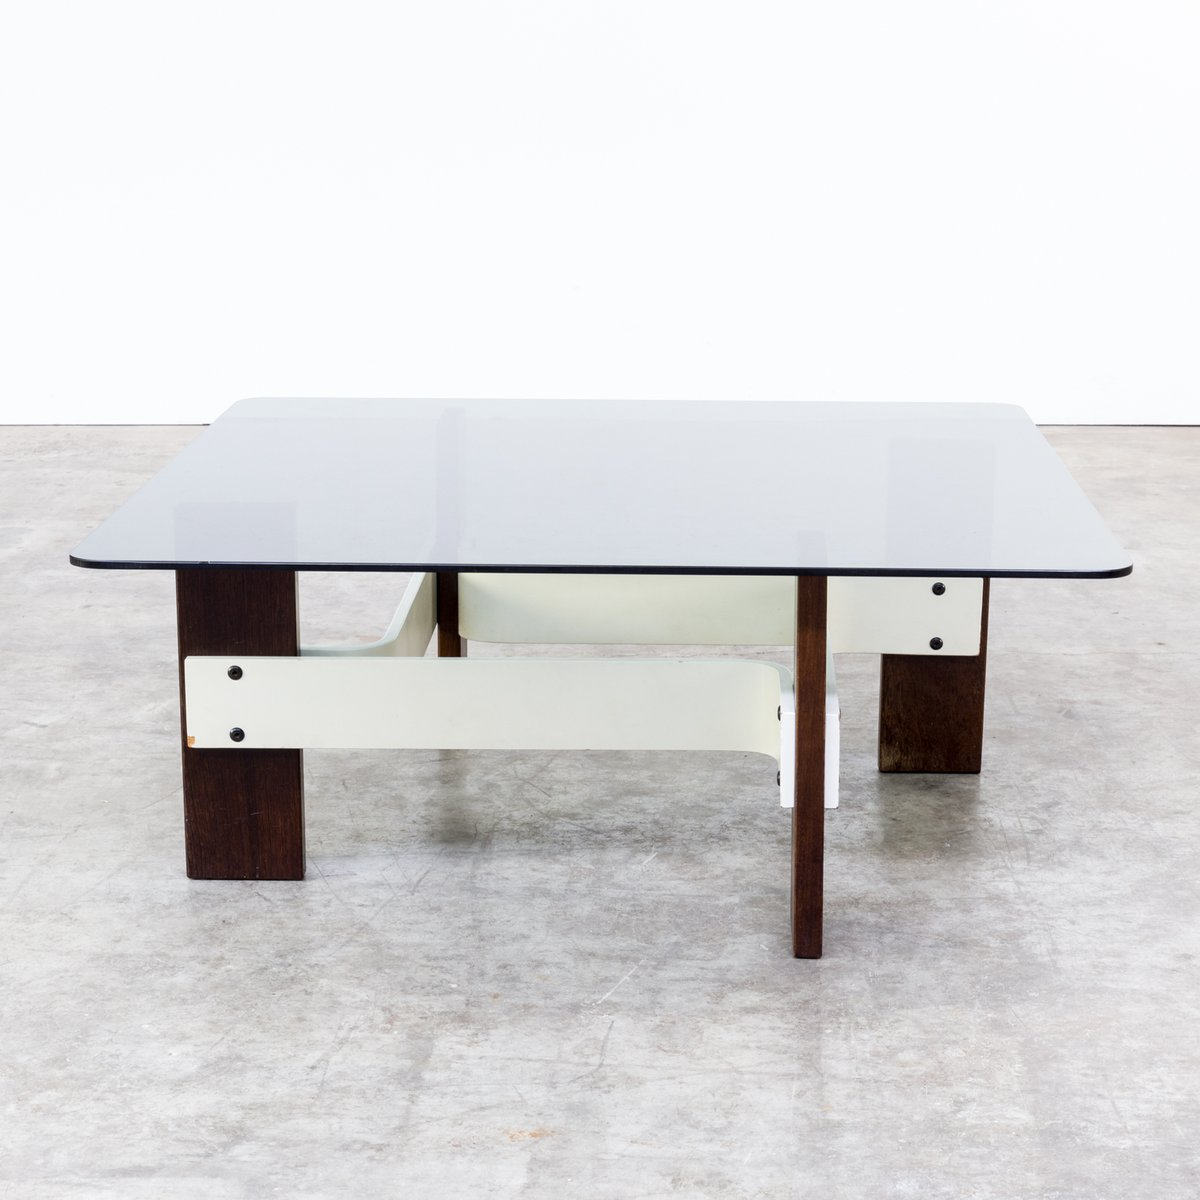 Vintage Square Coffee Table with Smoked Glass Table Top 1970s for